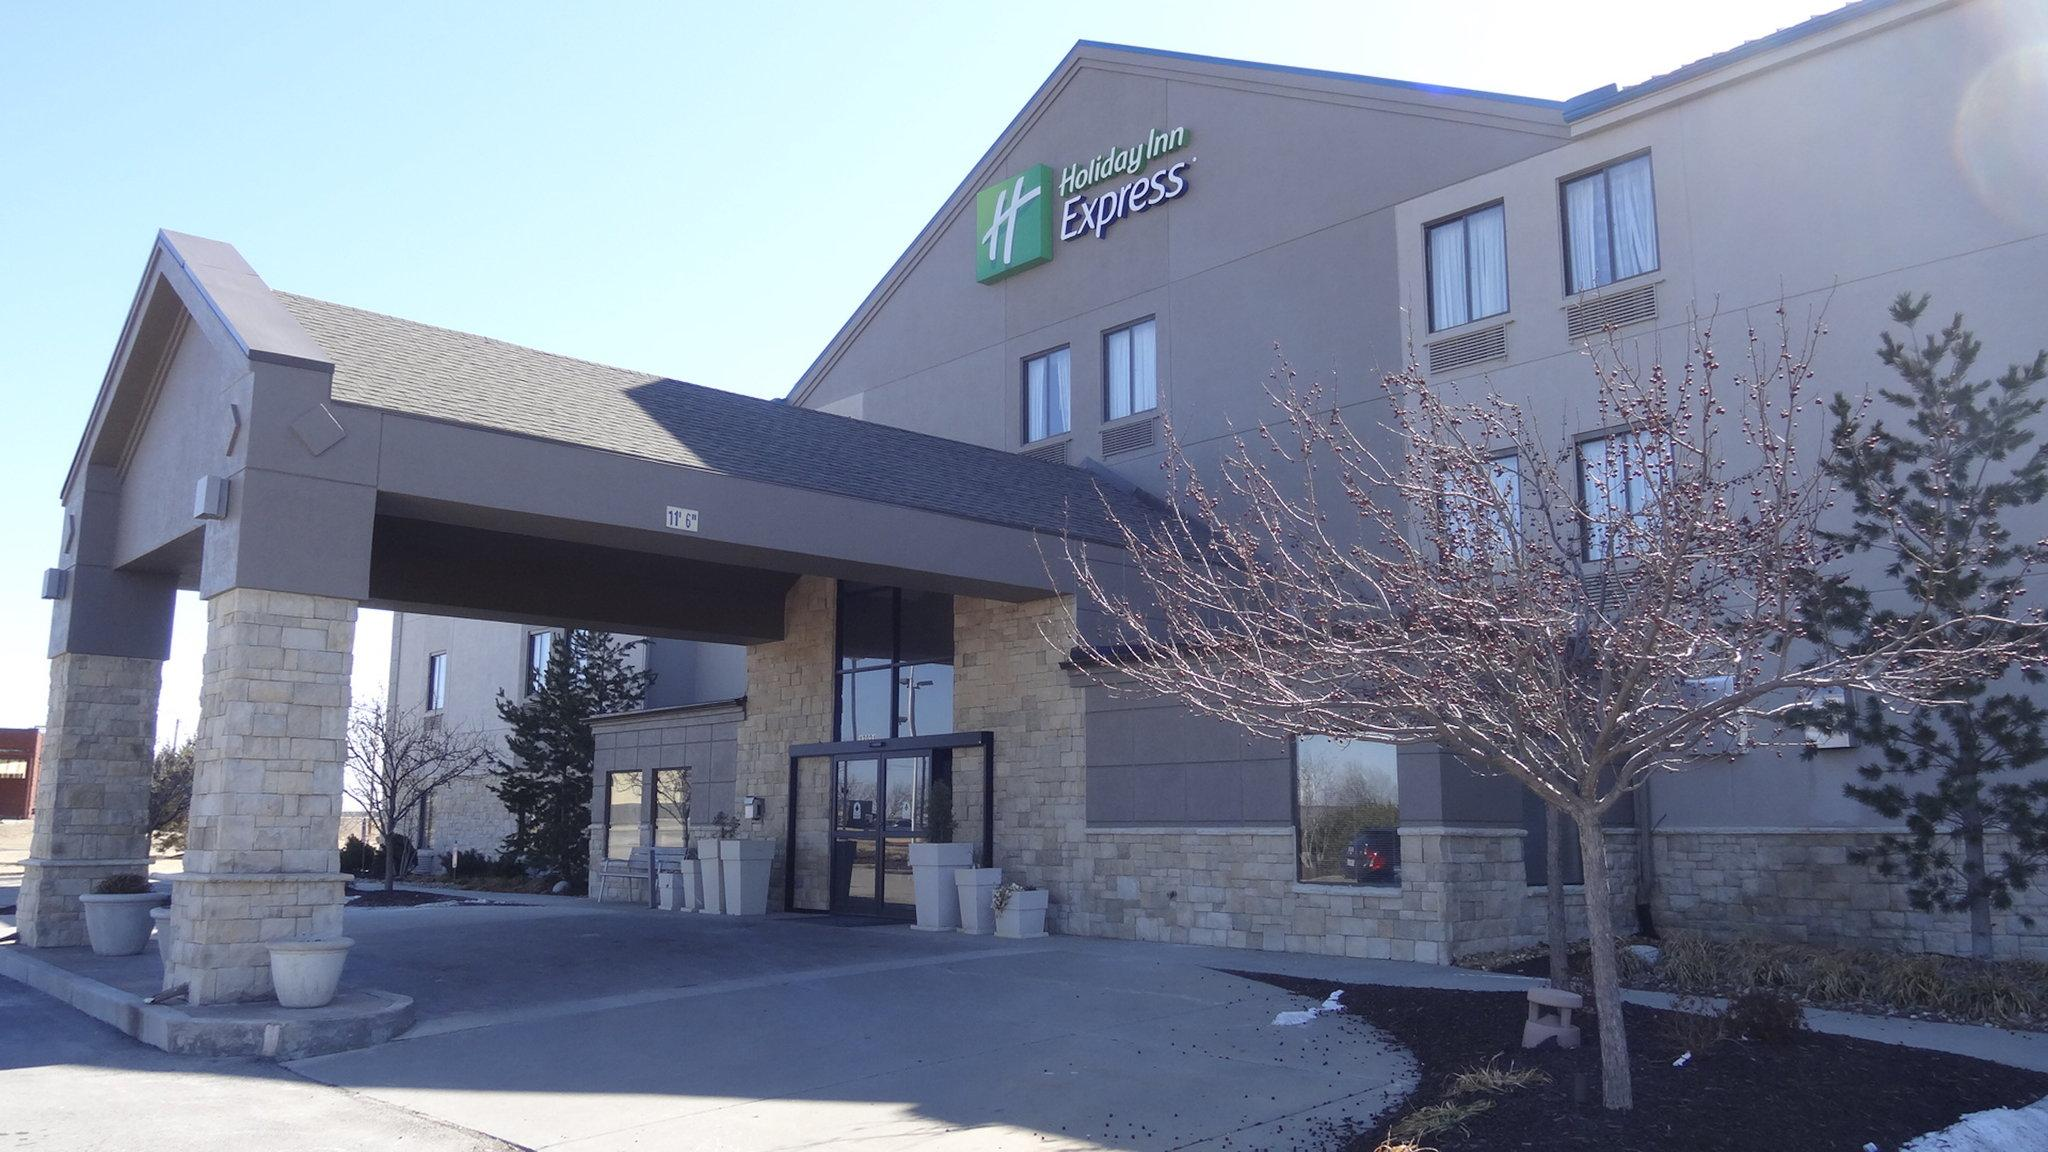 Holiday Inn Express Bonner Springs